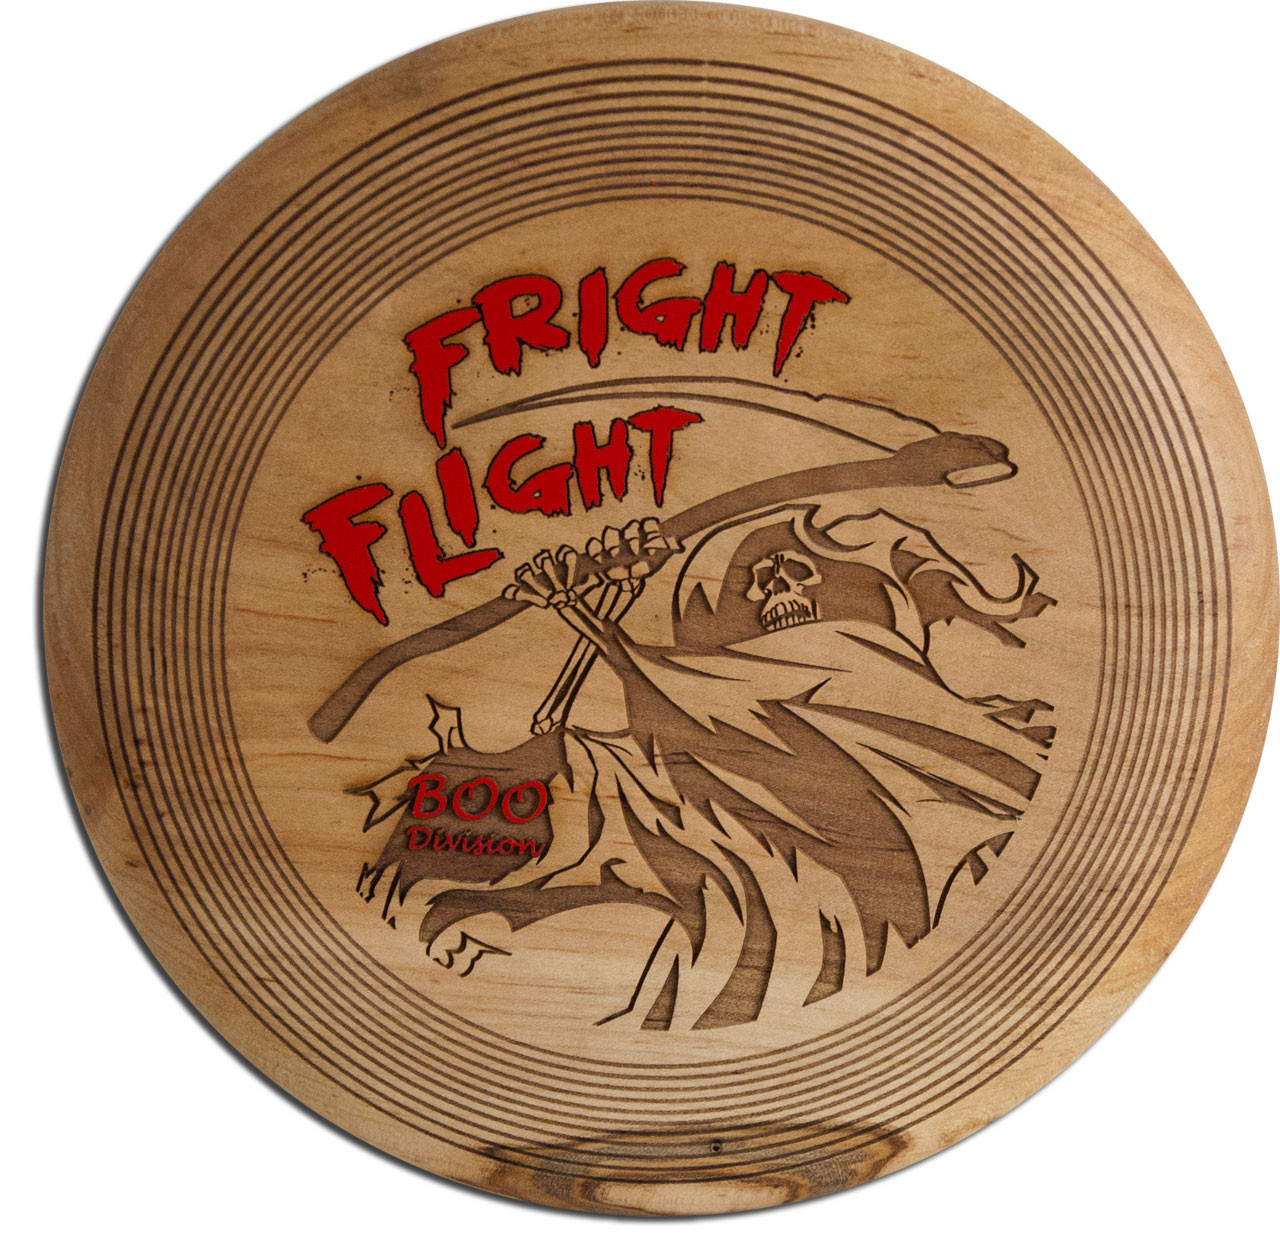 custom engraved wood ultimate trophy the wright life action sports